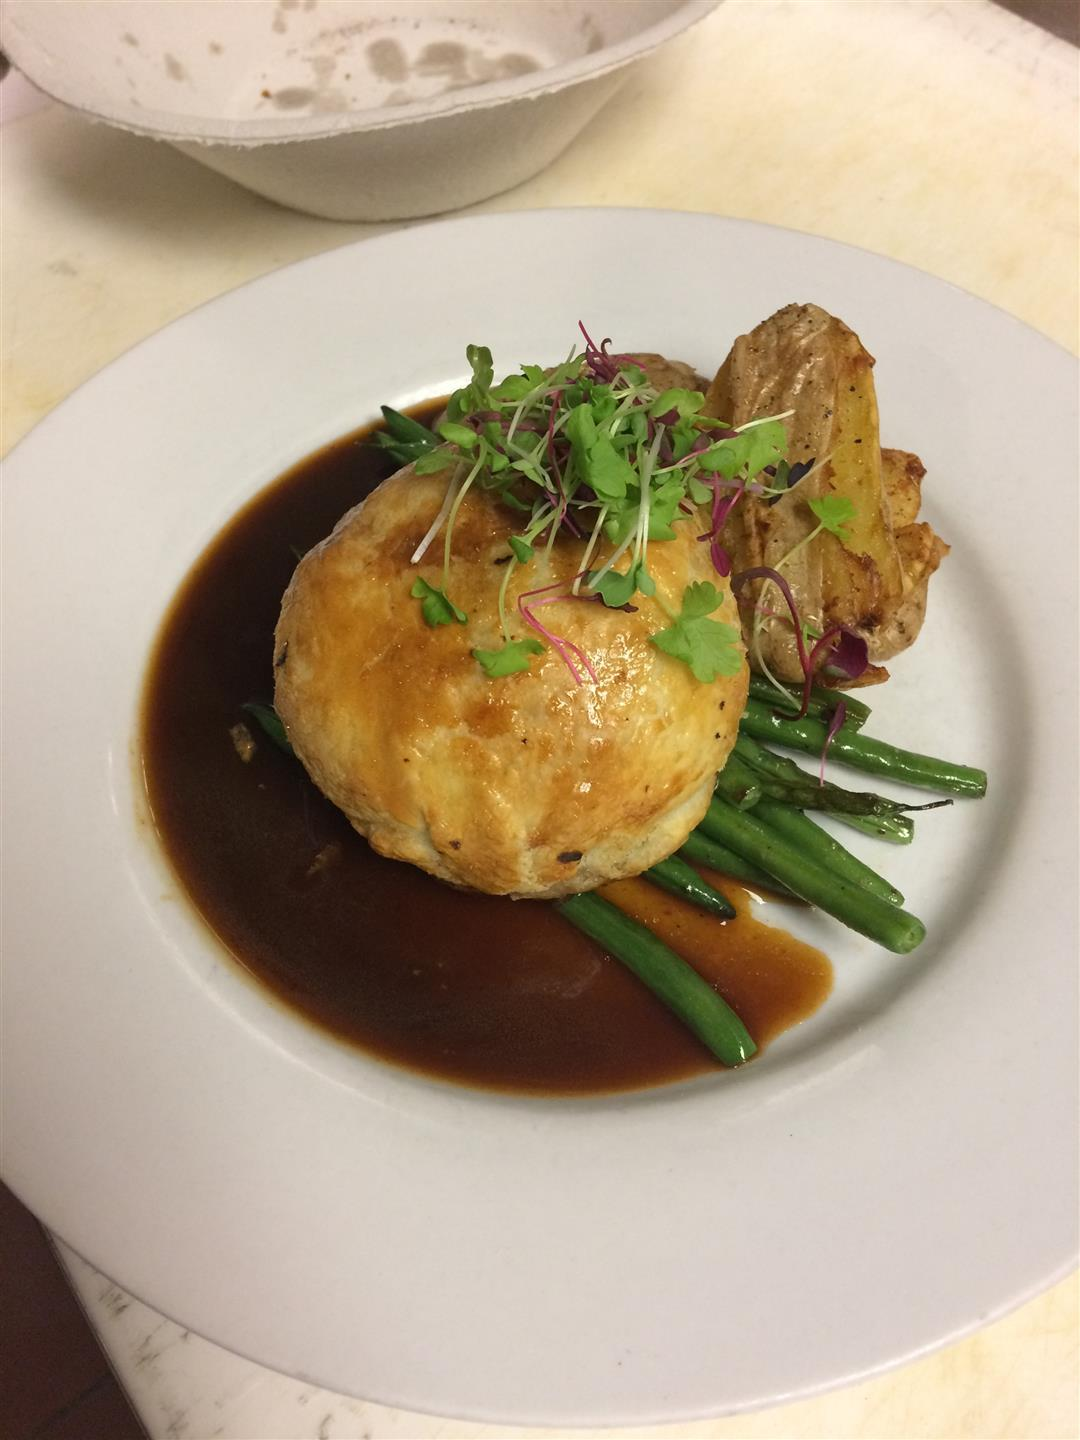 Roasted chicken over string beans and gravy